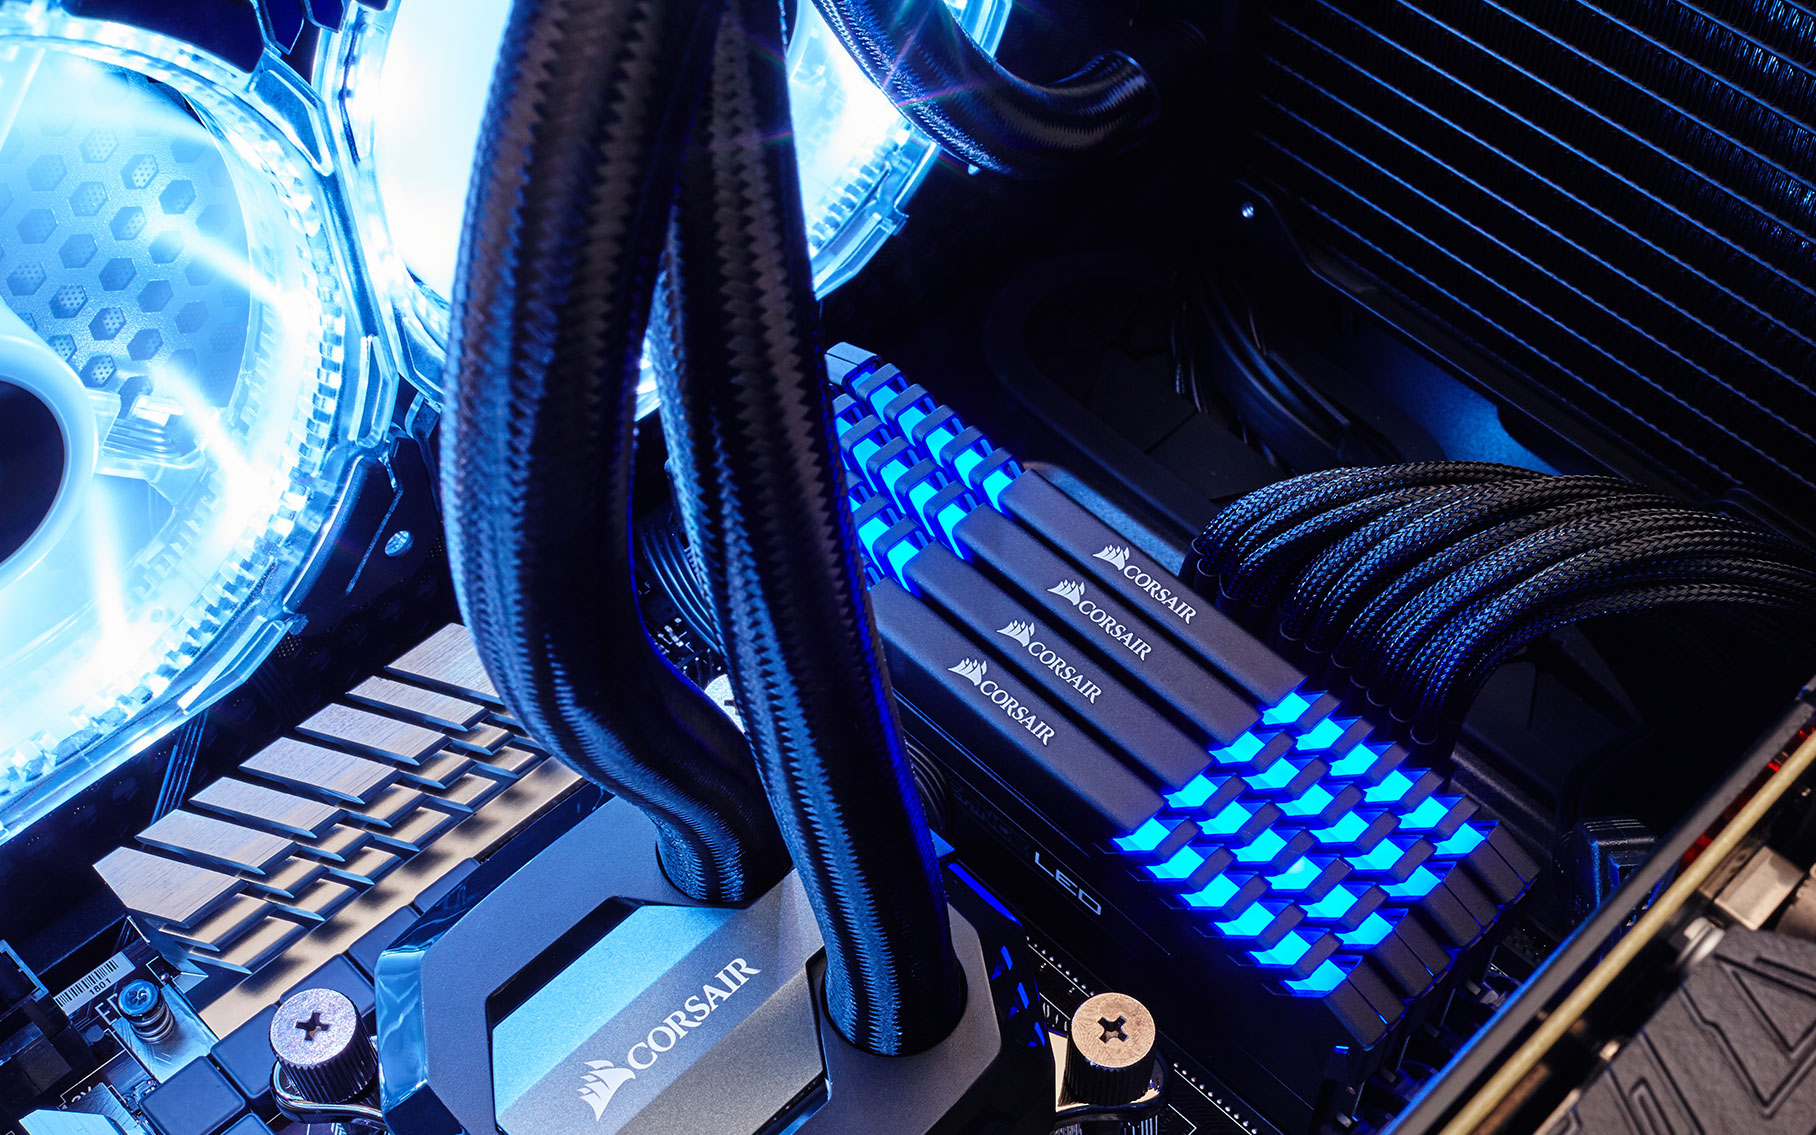 Vengeance Led Ddr Memory Stunning Lighting And Superior Overclocking All In One